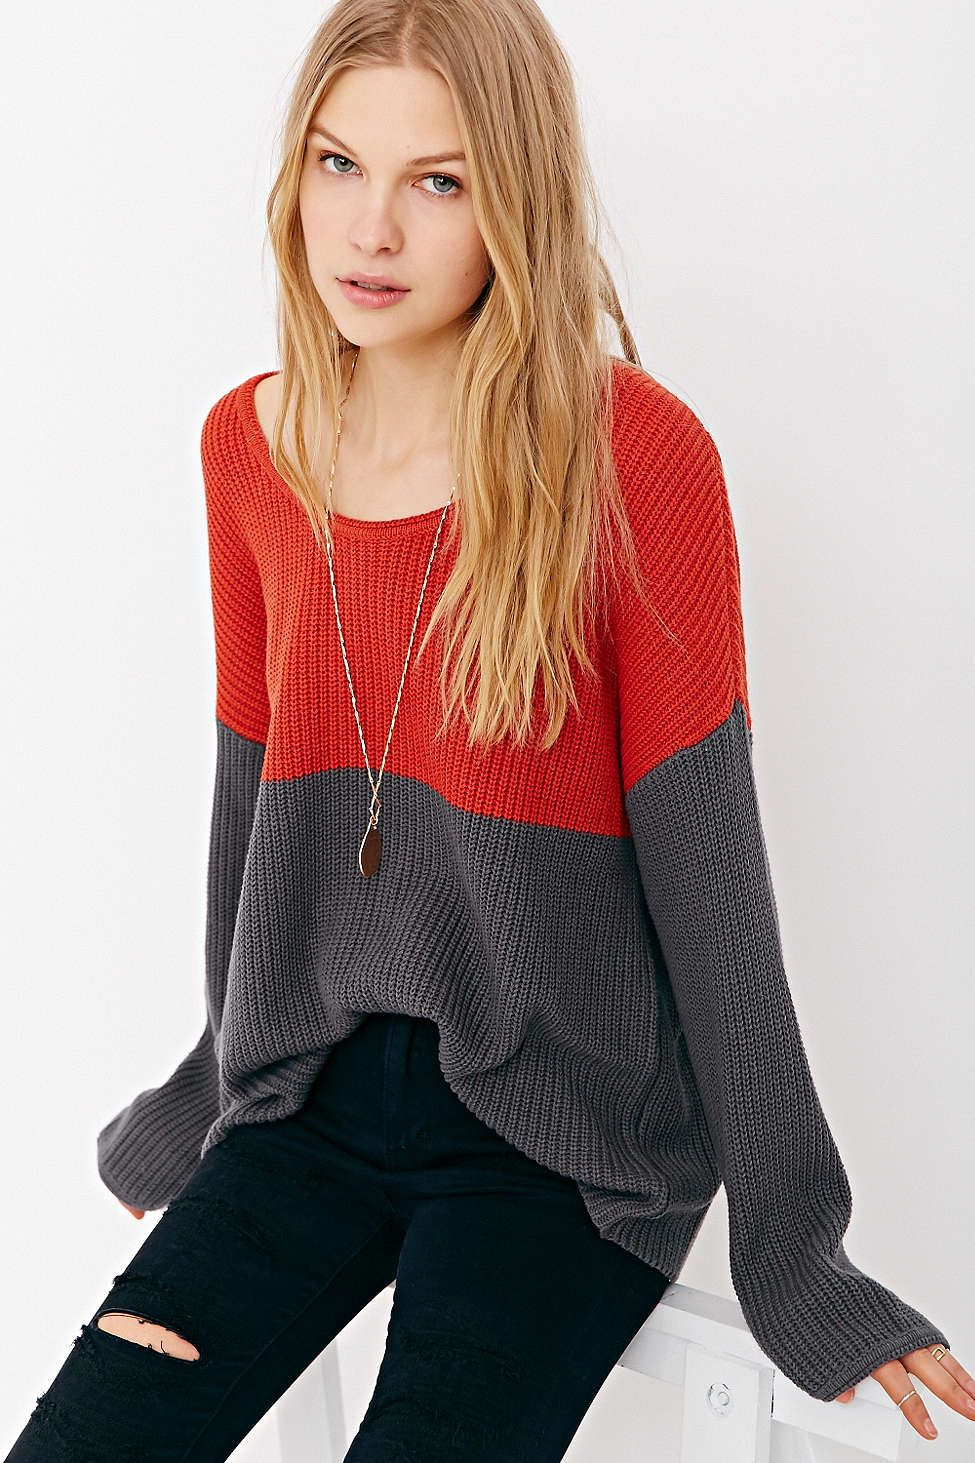 Mouchette Skyler Striped Sweater - Urban Outfitters